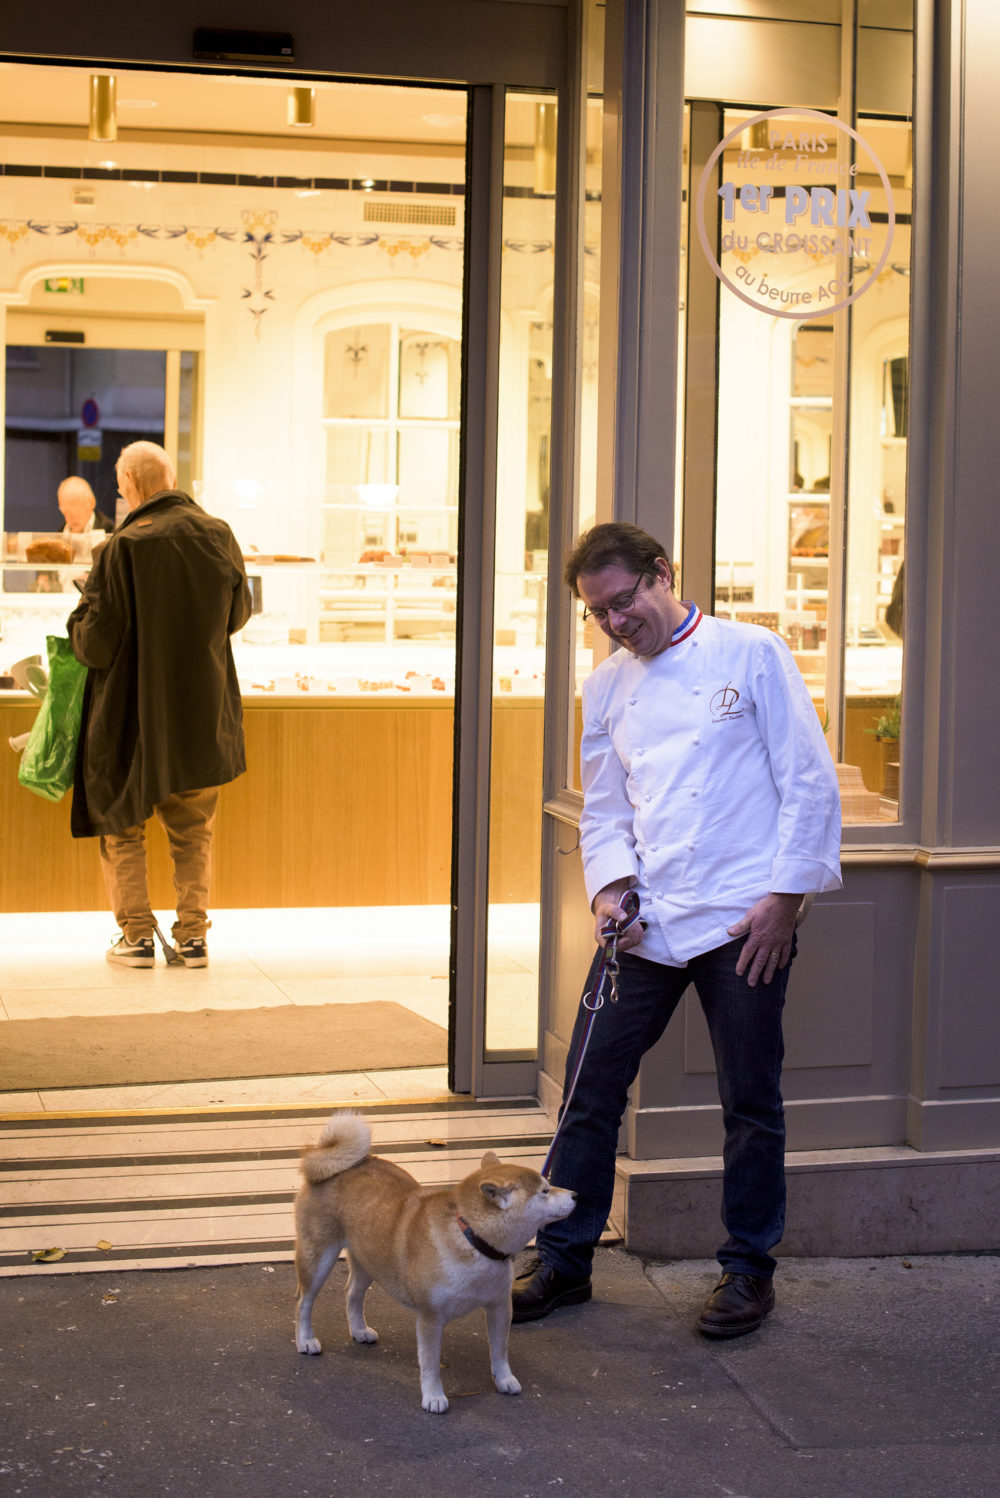 Laurent Duchne, who has been decorated as one of France's top pastry makers, watches a patron's dog, who is named Jacynthe, outside his boutique in the 13th arrondissement on Nov. 12, 2018 in Paris. (Pete Kiehart for Here & Now)